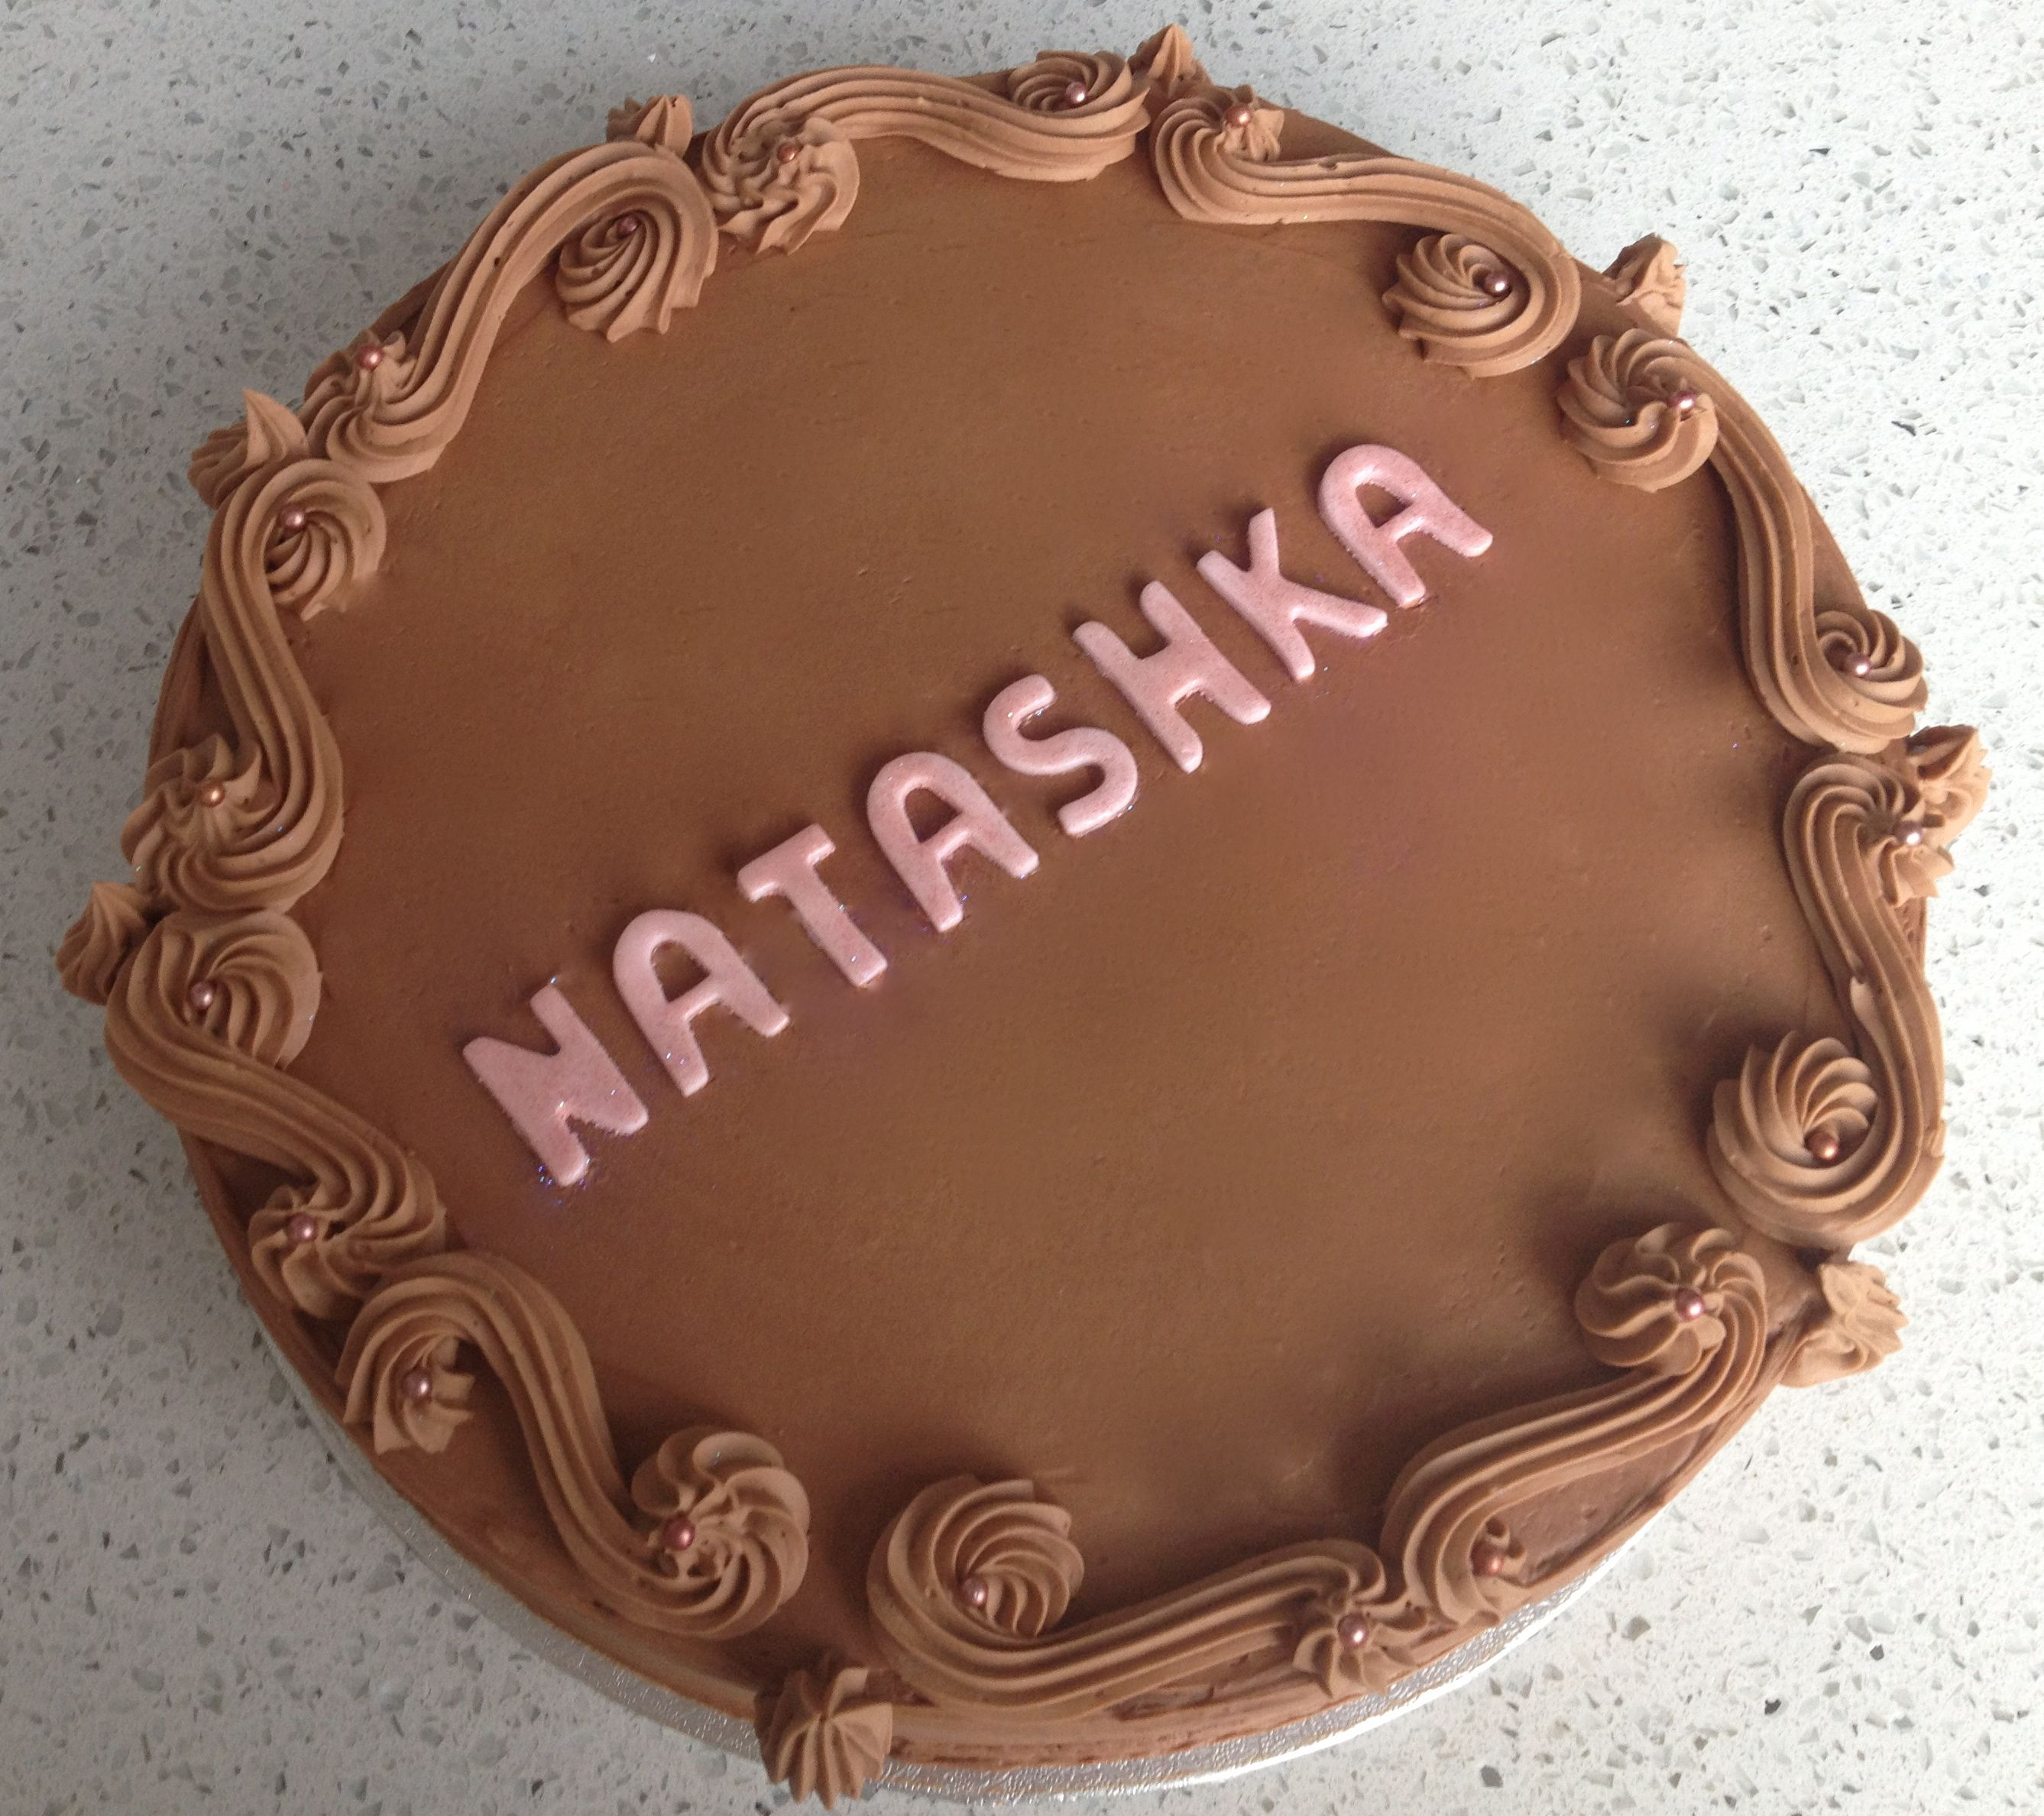 Happy Birthday Natashka Chocolate Truffle Cake Cake me Baby